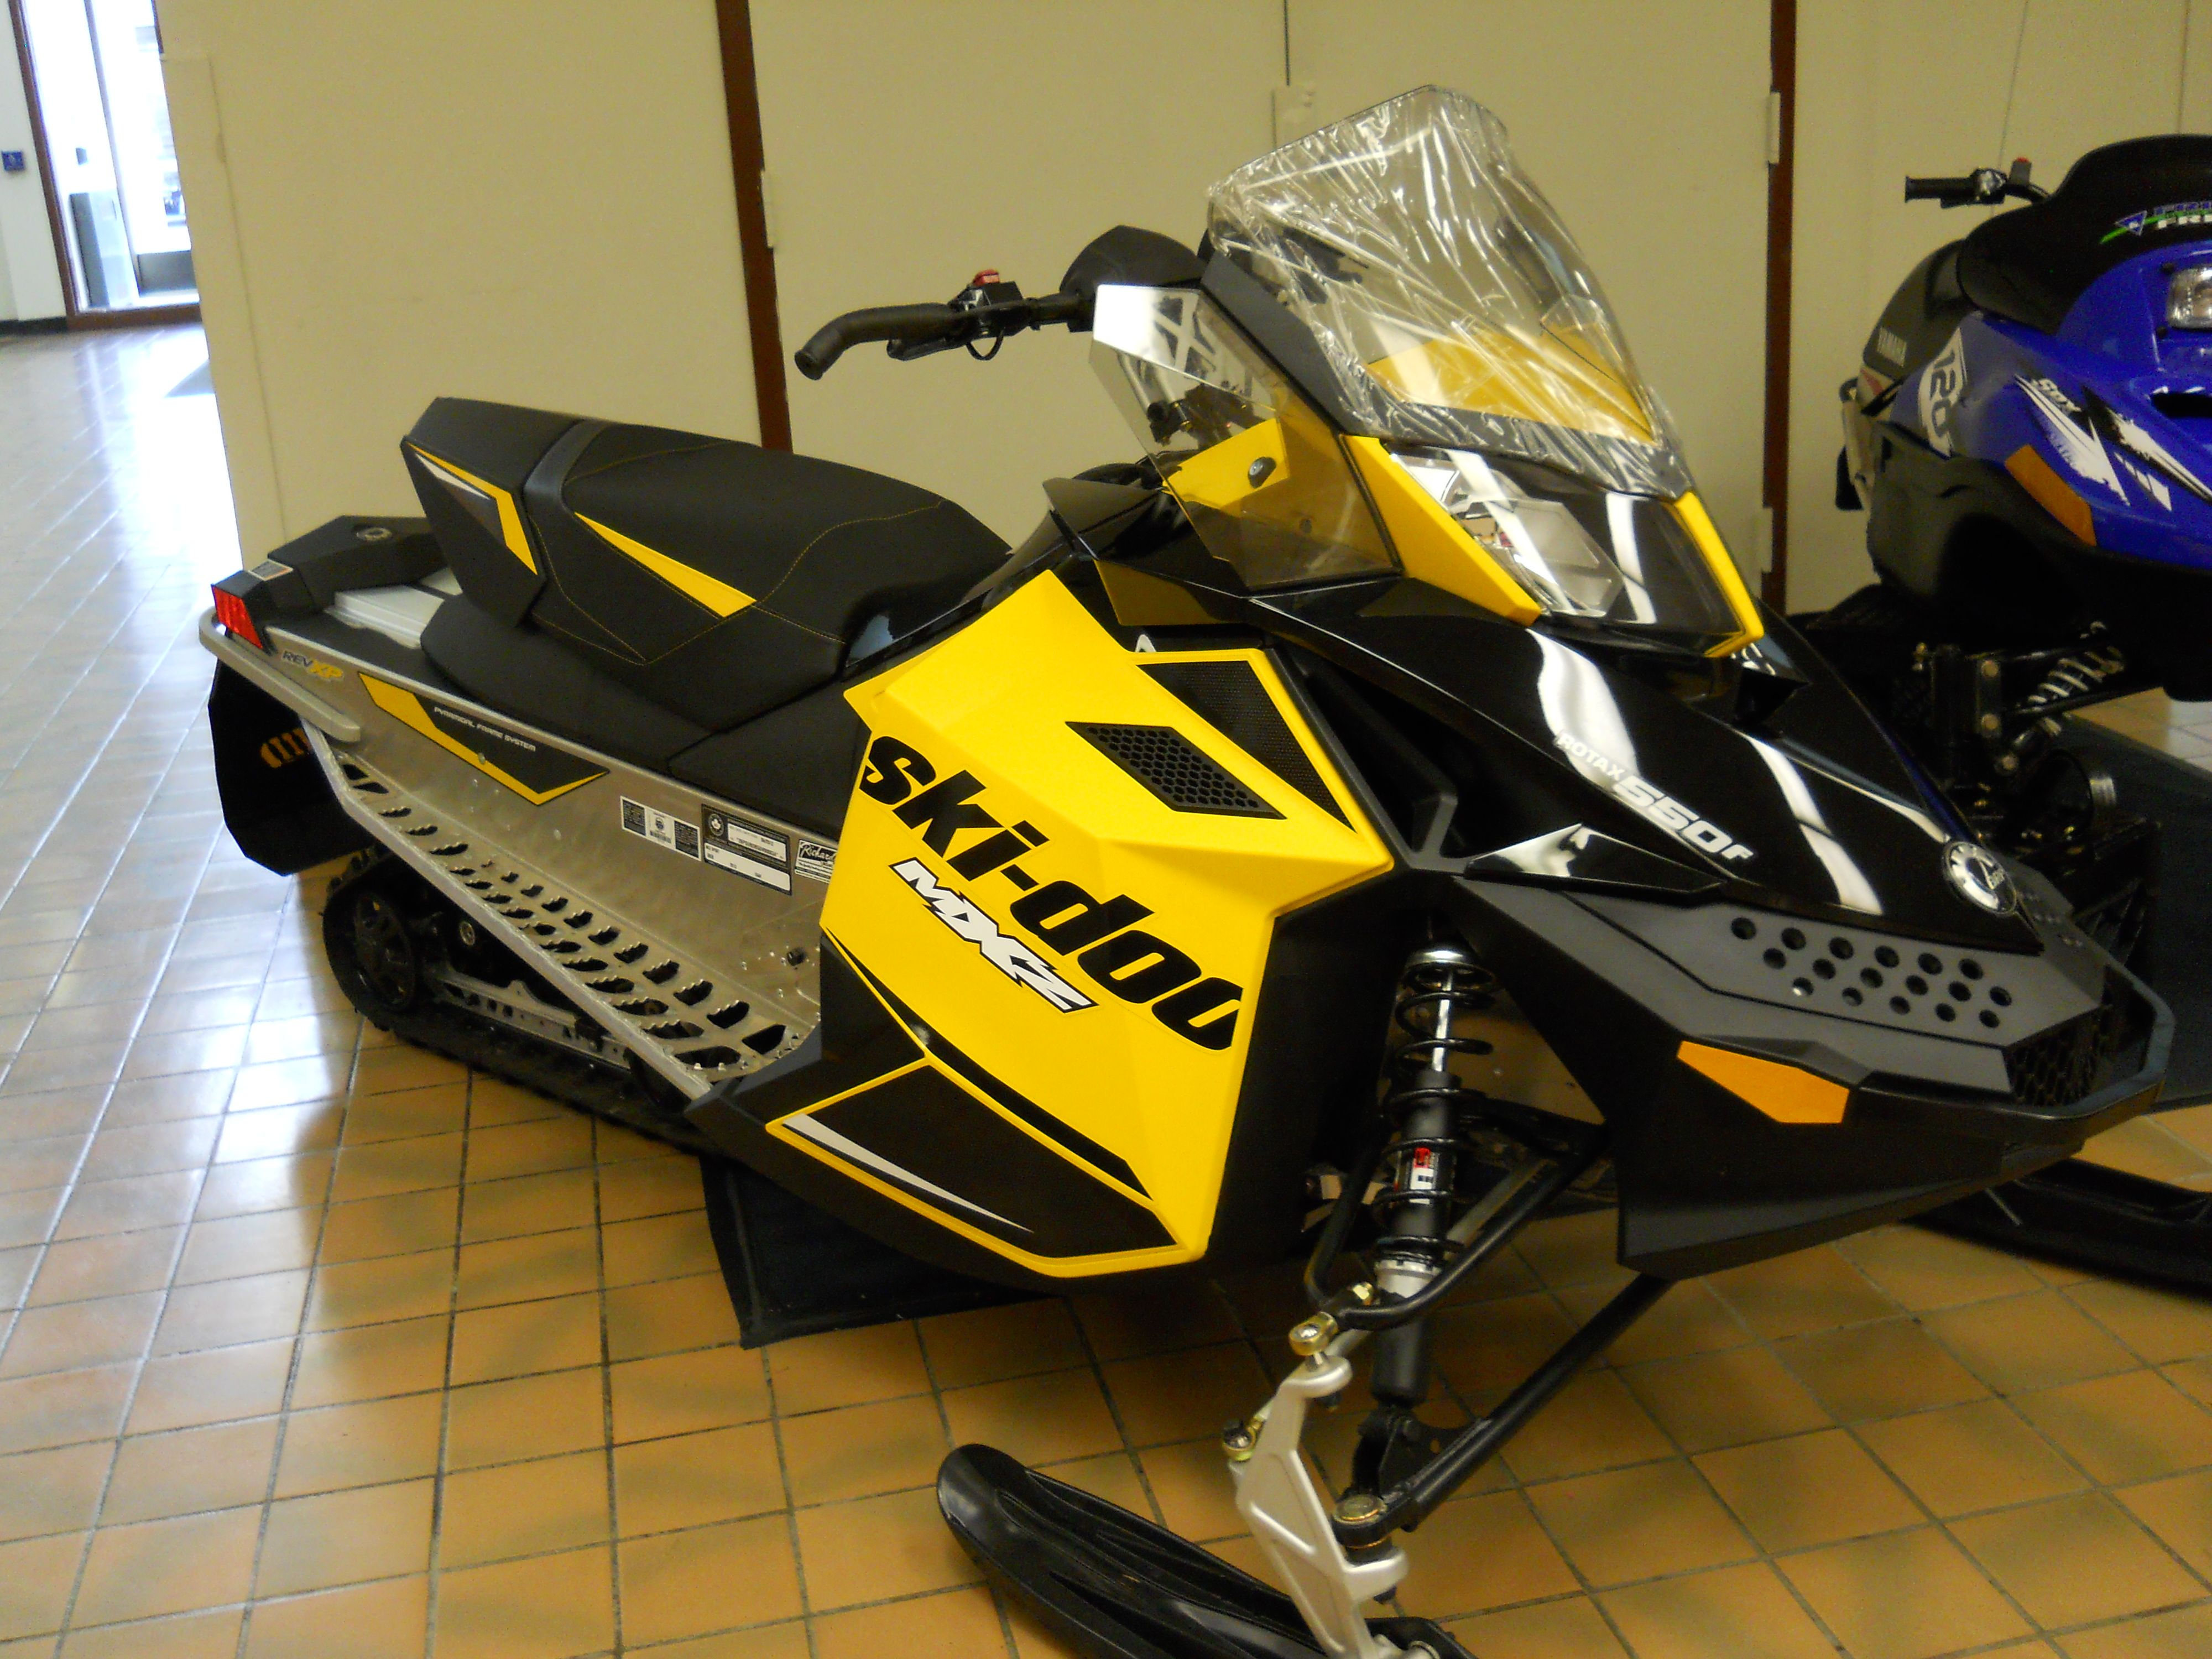 Youth Ski Doo Snowmobile Https Www Youtube Com User Viewwithme Snowmobile Snow Vehicles Skiing